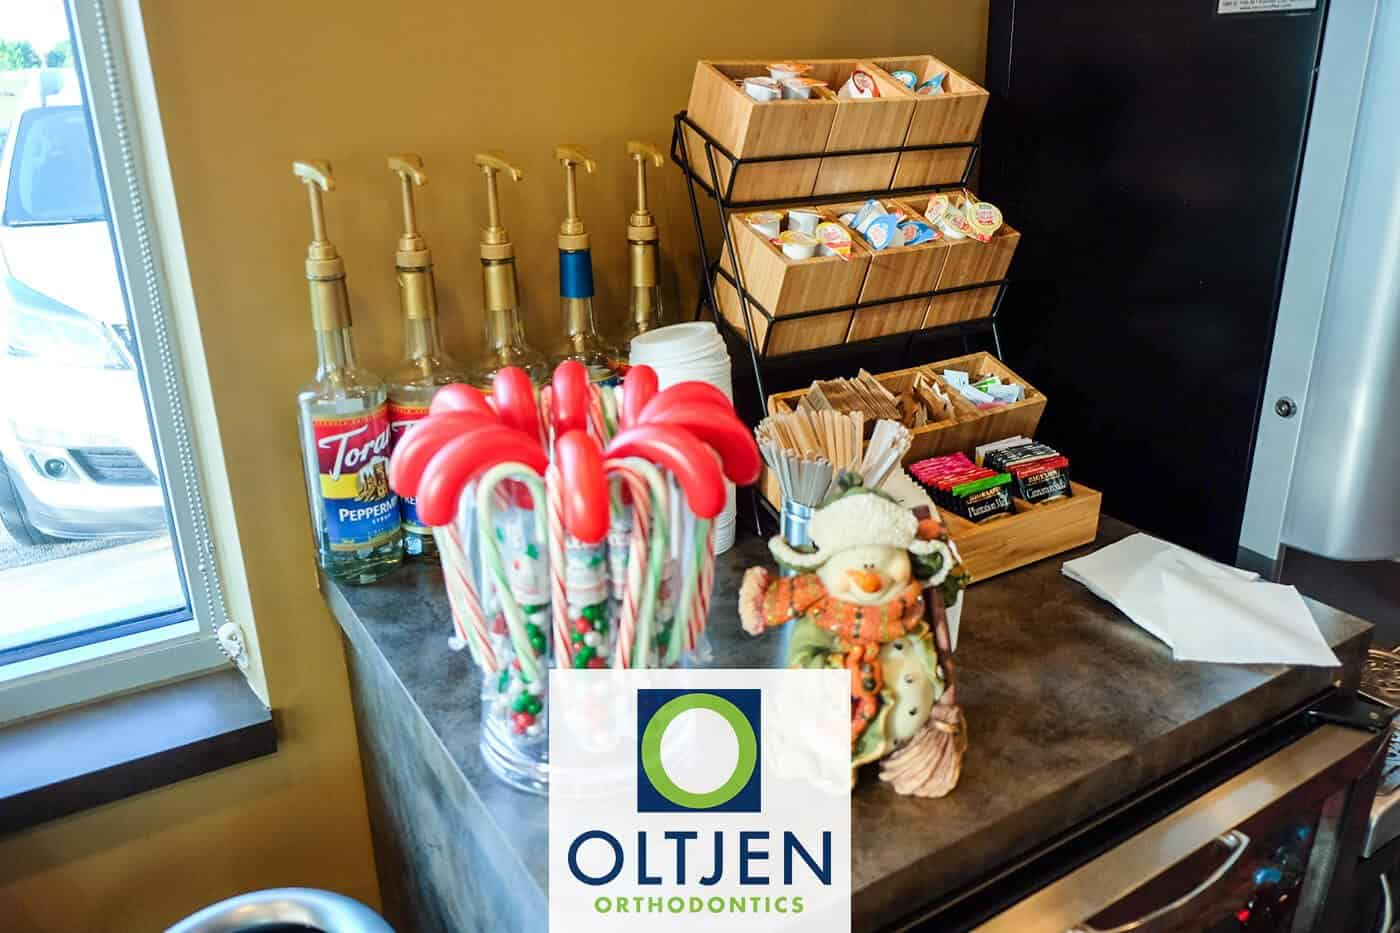 Oltjen-Orthodontics-Christmas-in-July-4-of-10